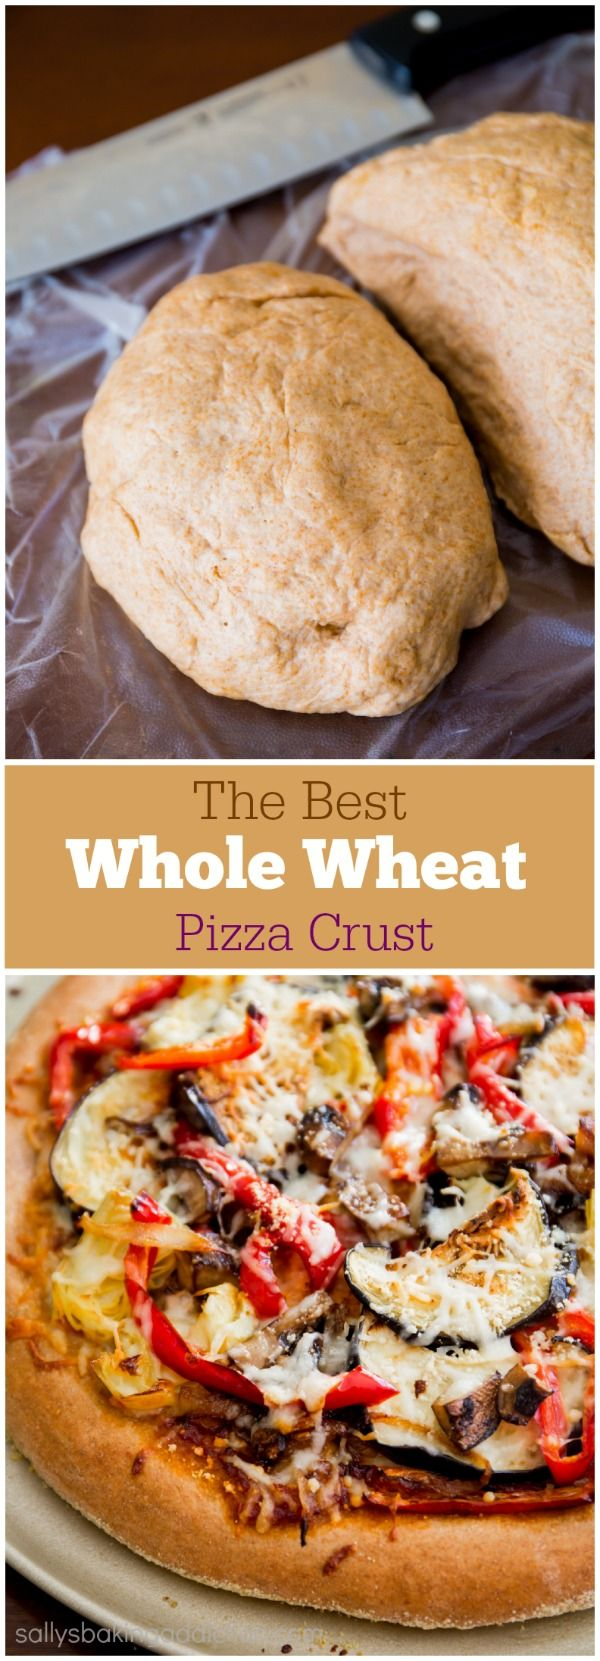 How to Make Homemade Whole Wheat Pizza Crust. Honey-sweetened, soft, fluffy, and so simple! Step by step visuals included.